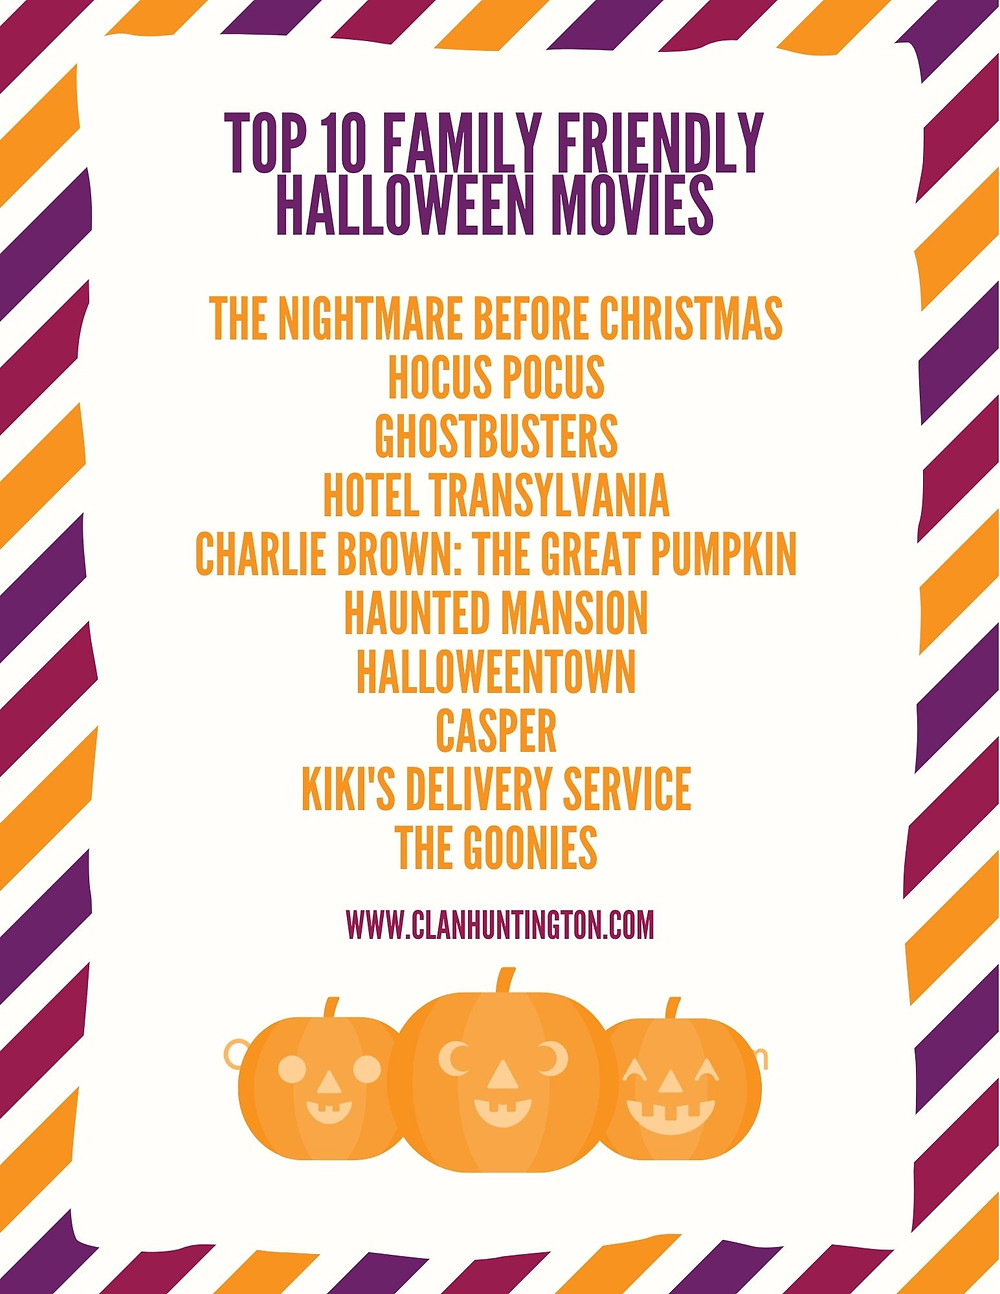 List of Top 10 Family Friendly Halloween Movies for families with younger children under 8 years old.